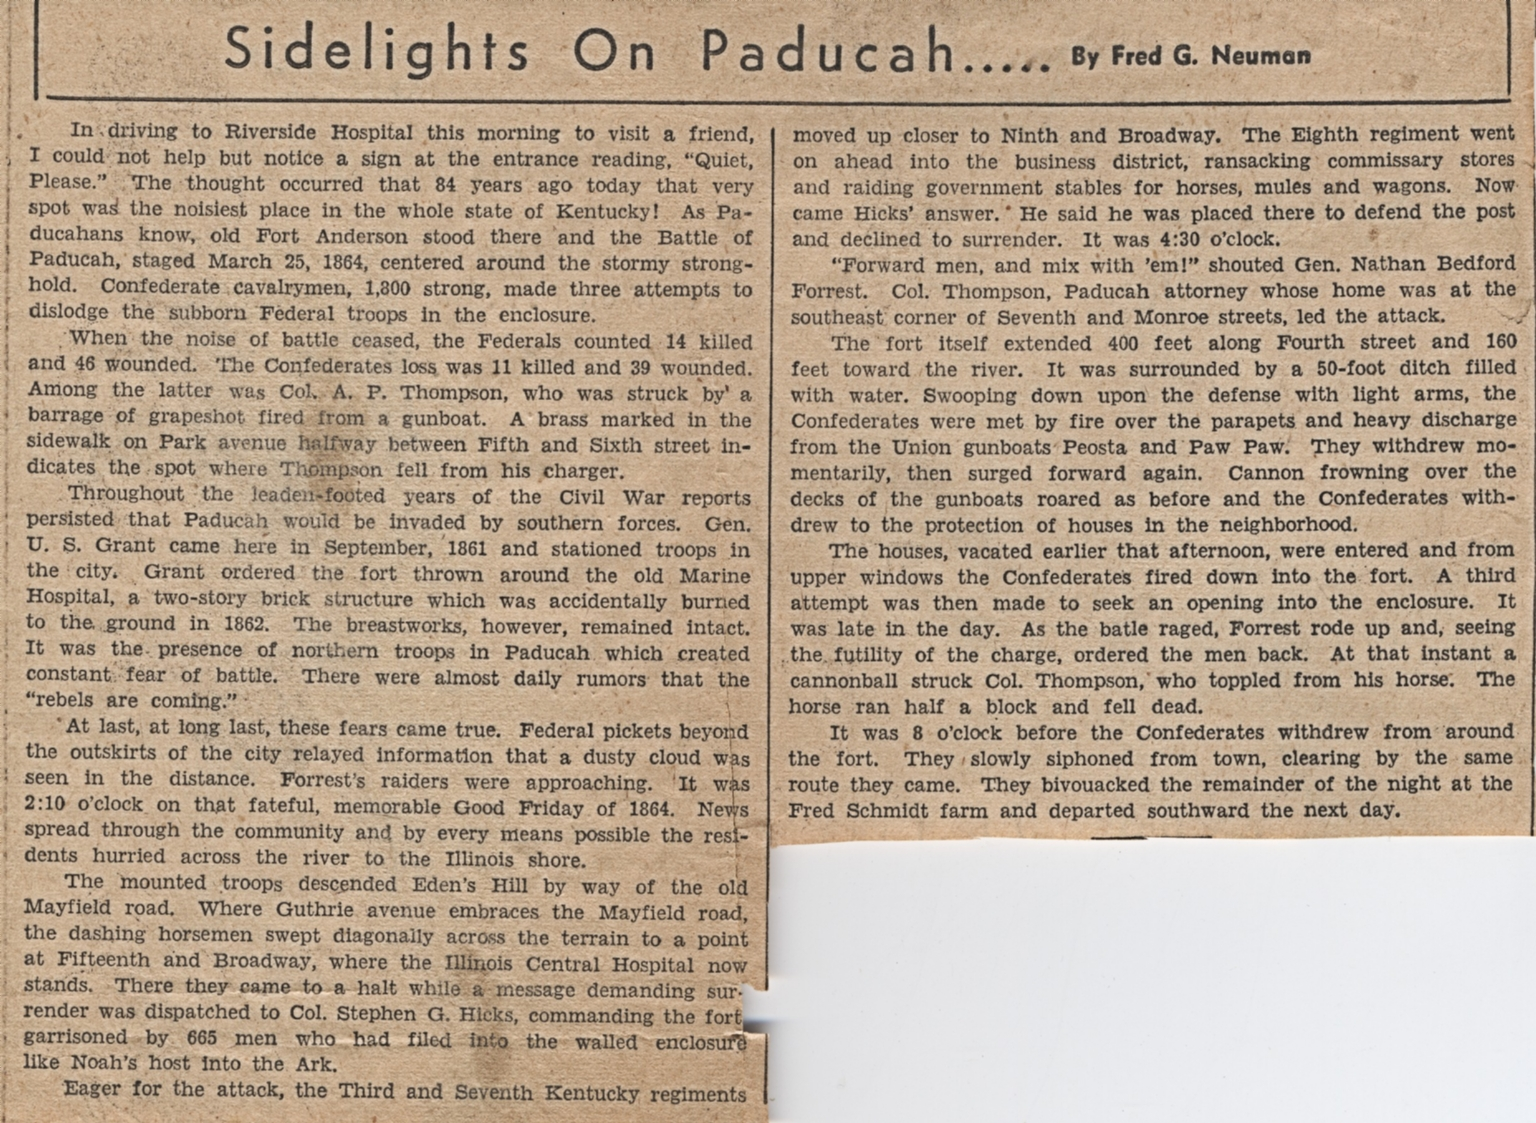 Newspaper article on history of the Battle of Paducah